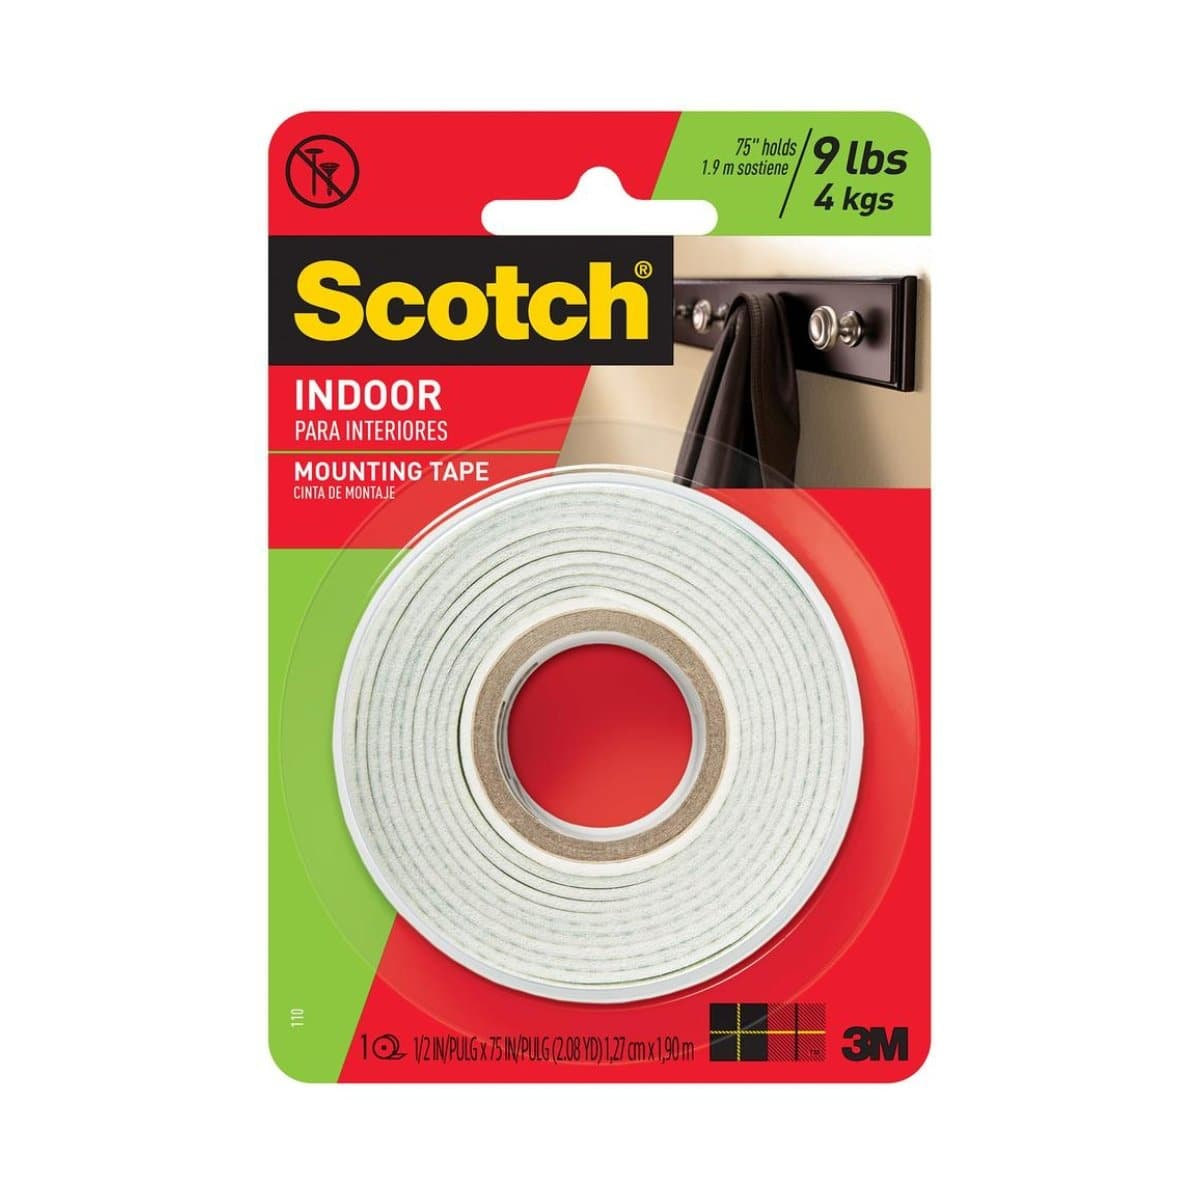 3M Scotch Mounting Tape 110, Indoor, 1/2 x 75 inches